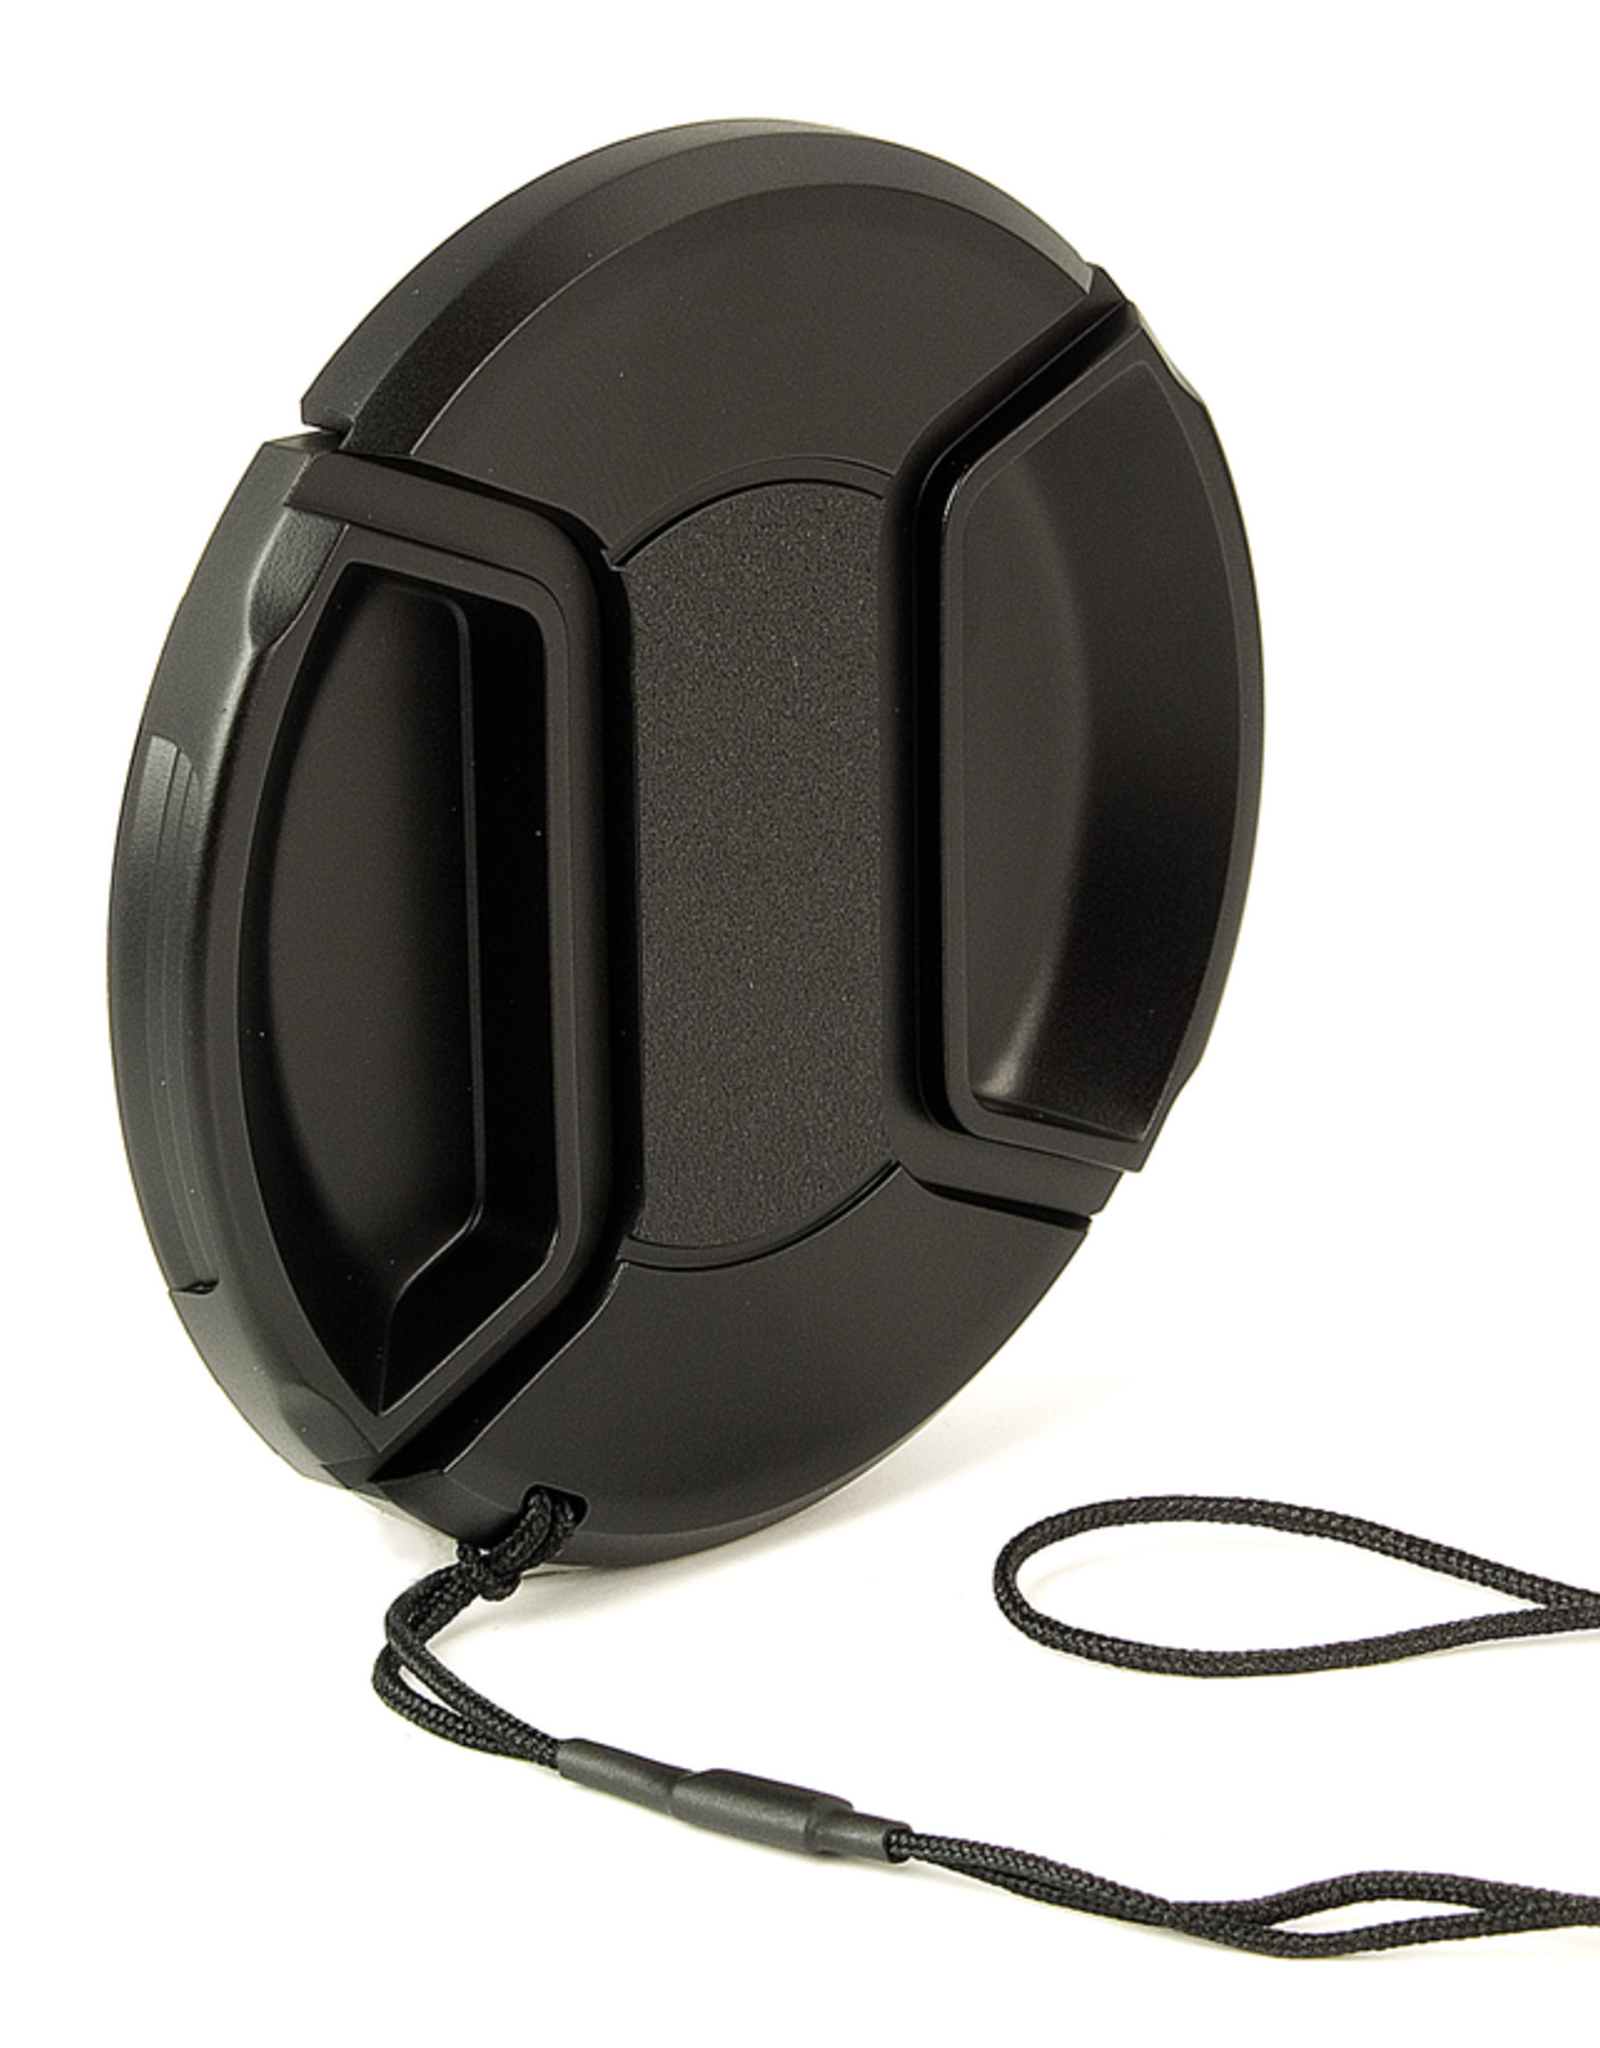 Kaiser Snap-On Lens Cap, with loss protection, ø 86 mm